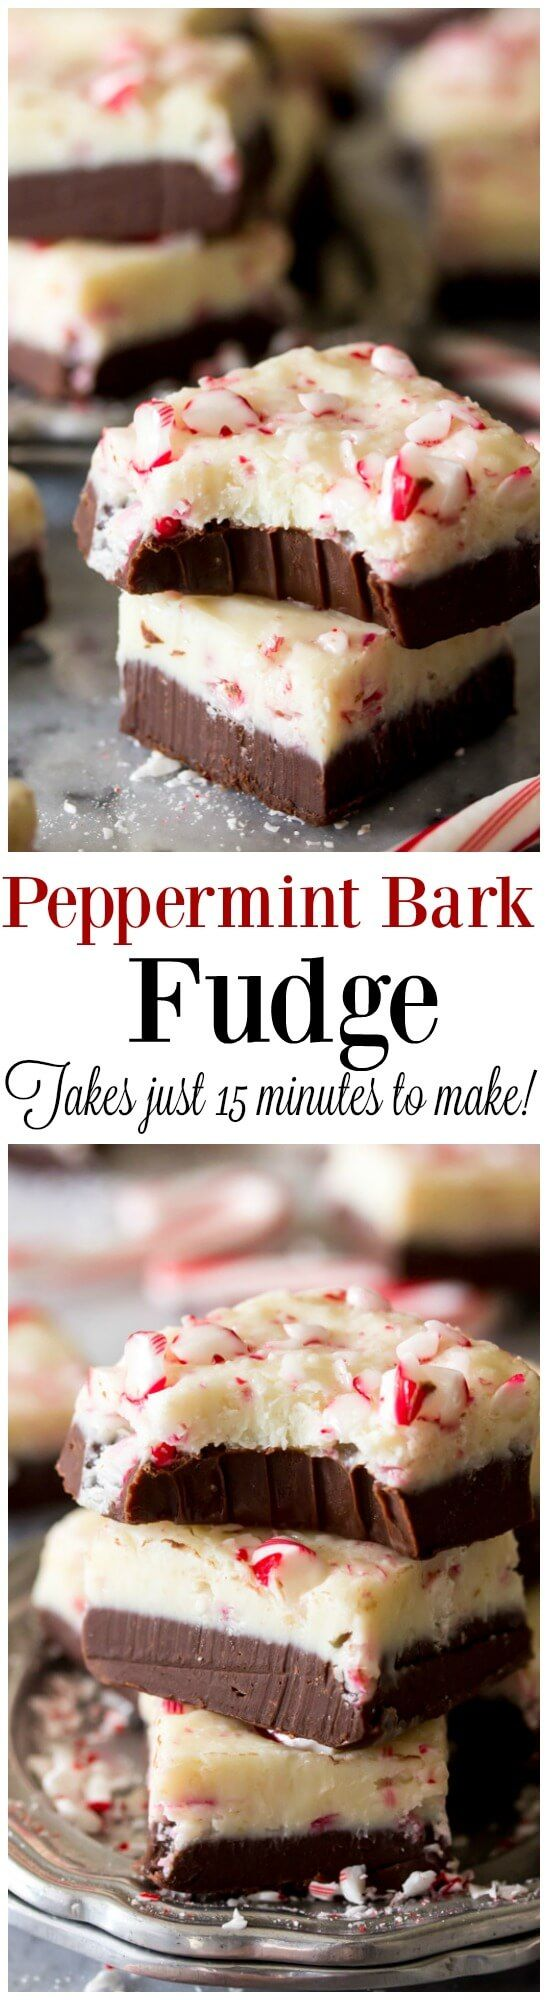 peppermint-bark-fudge-made-in-just-15-minutes-without-a-candy-thermometer-sugar-spun-run (Peppermint Christmas Drinks)